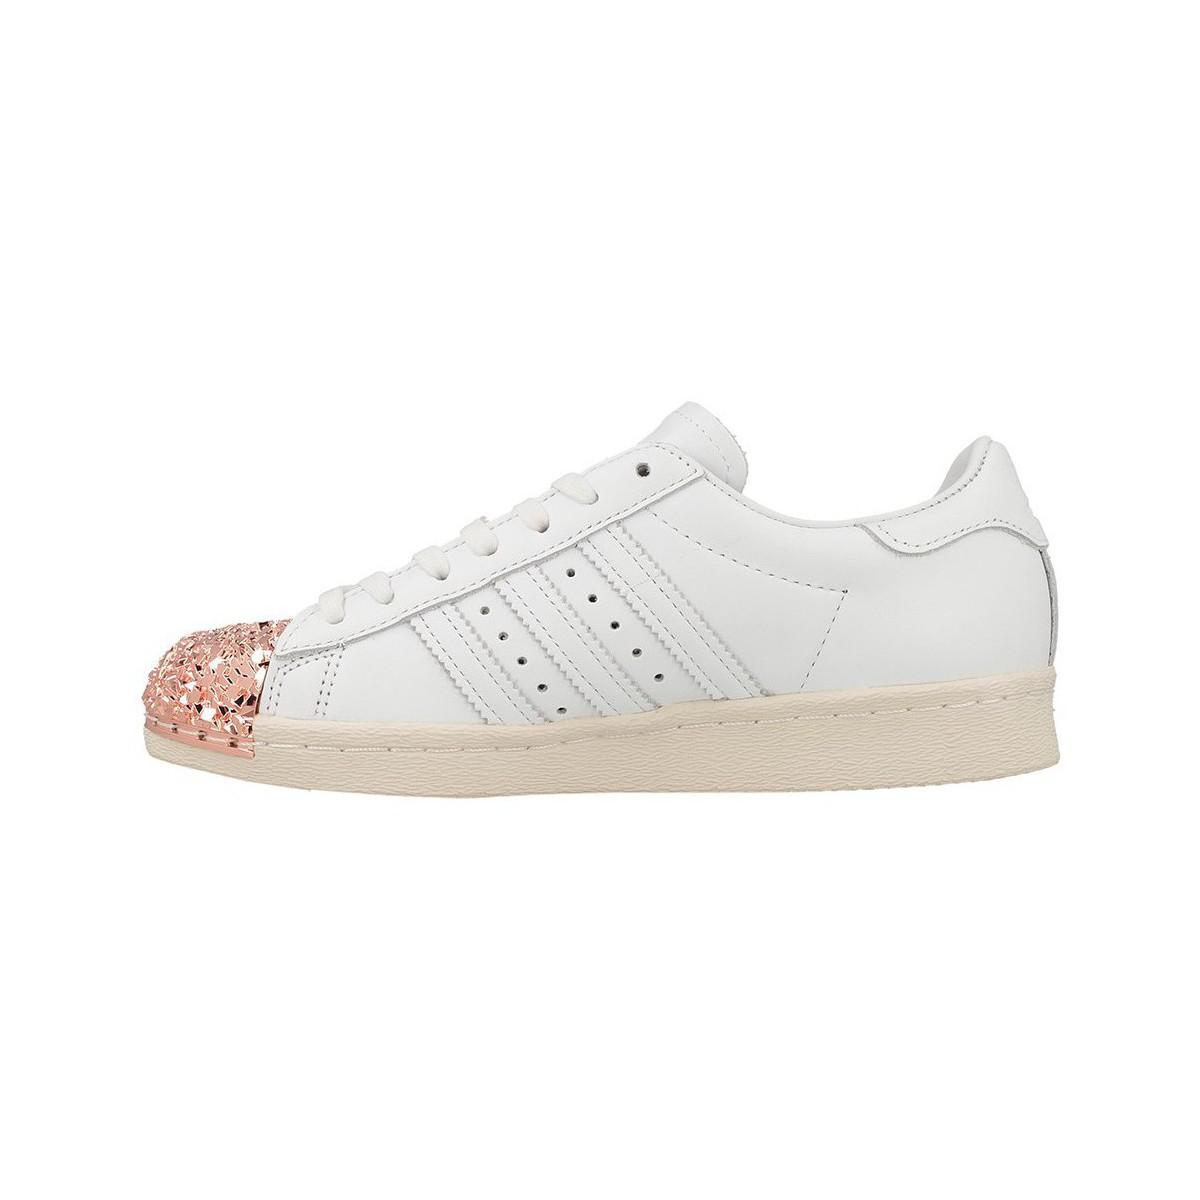 adidas SUPERSTAR MT W women's Shoes (Trainers) in Explore Cheap Online FT8DI